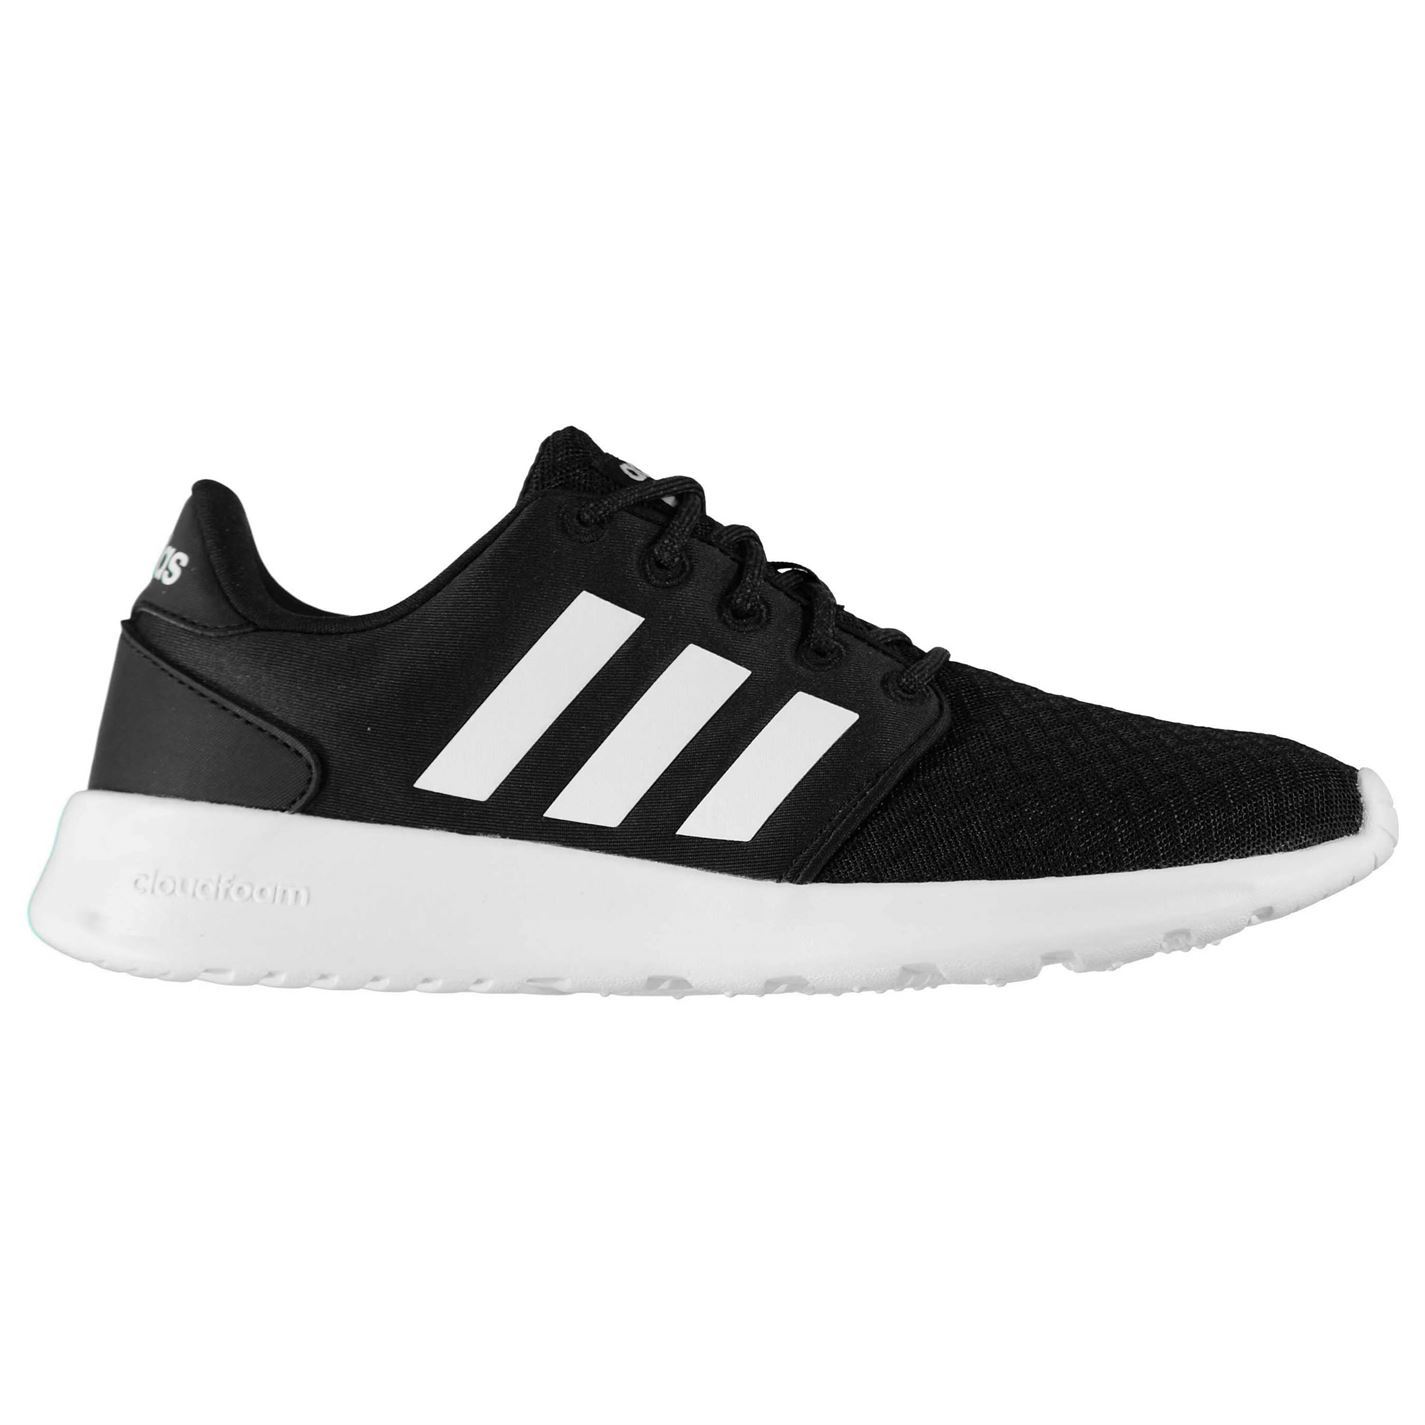 adidas Womens QT Racer Breathable Shoes Runners Lace Up Breathable Racer Padded Ankle Collar 5a2b56